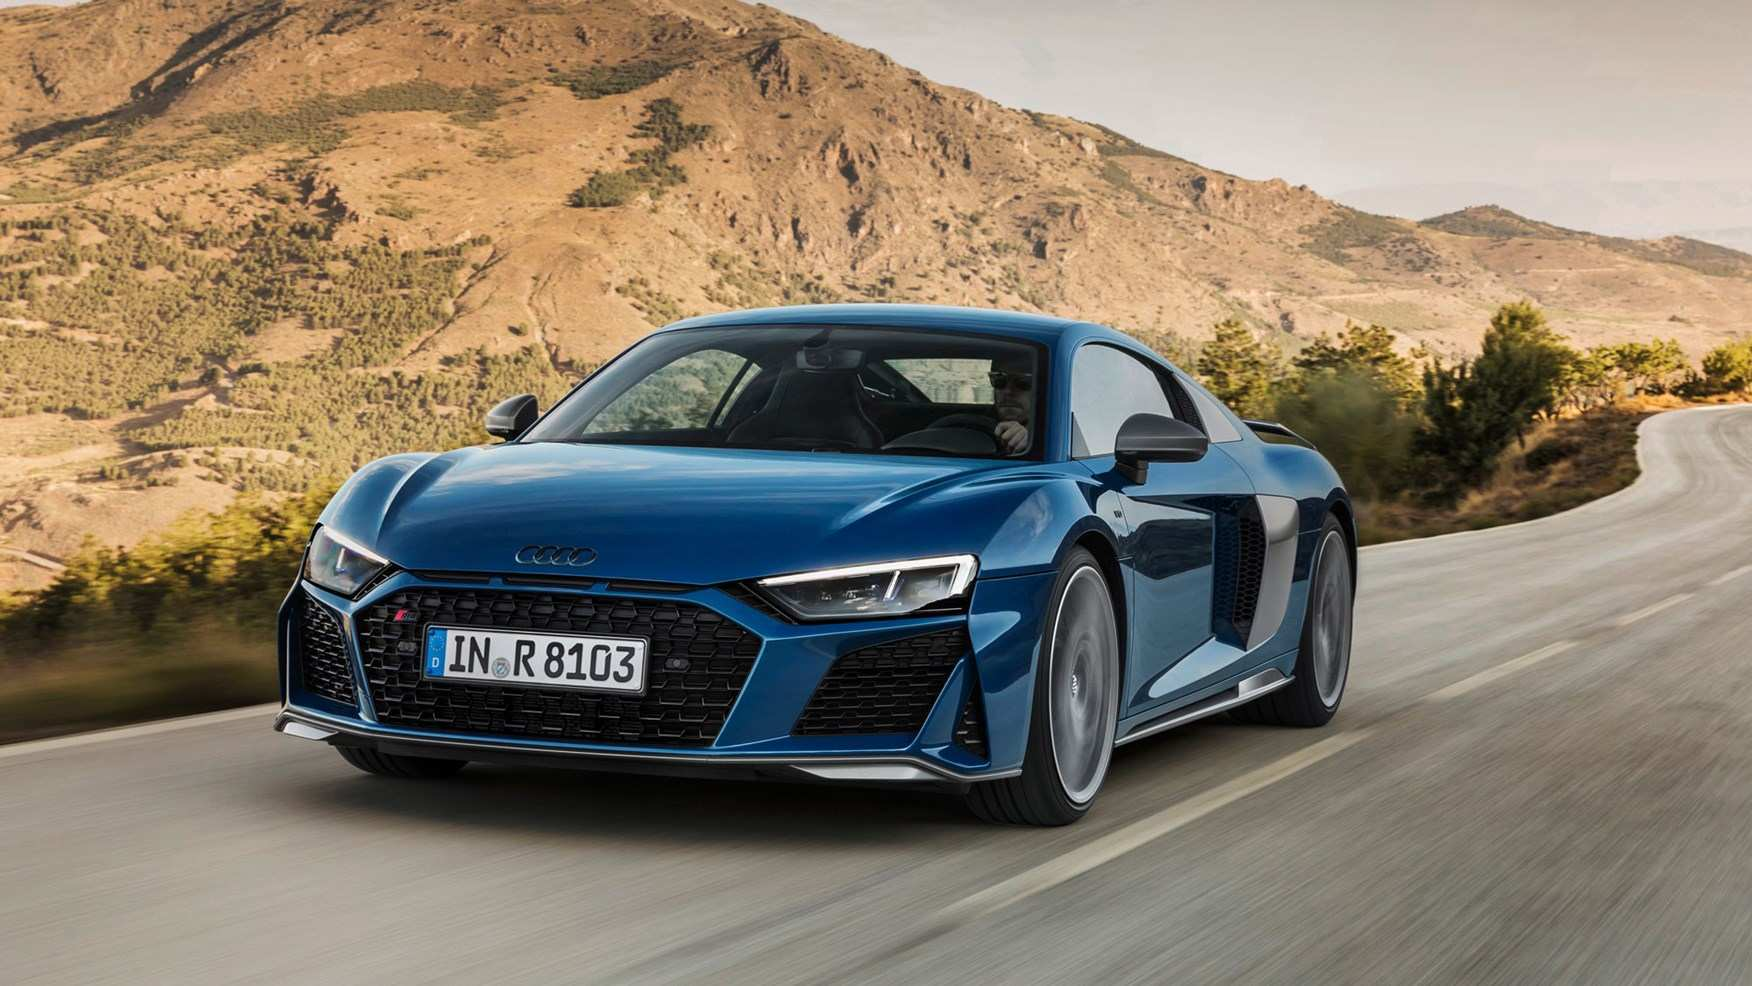 42 Gallery of The R8 Audi 2019 Review And Price Specs by The R8 Audi 2019 Review And Price